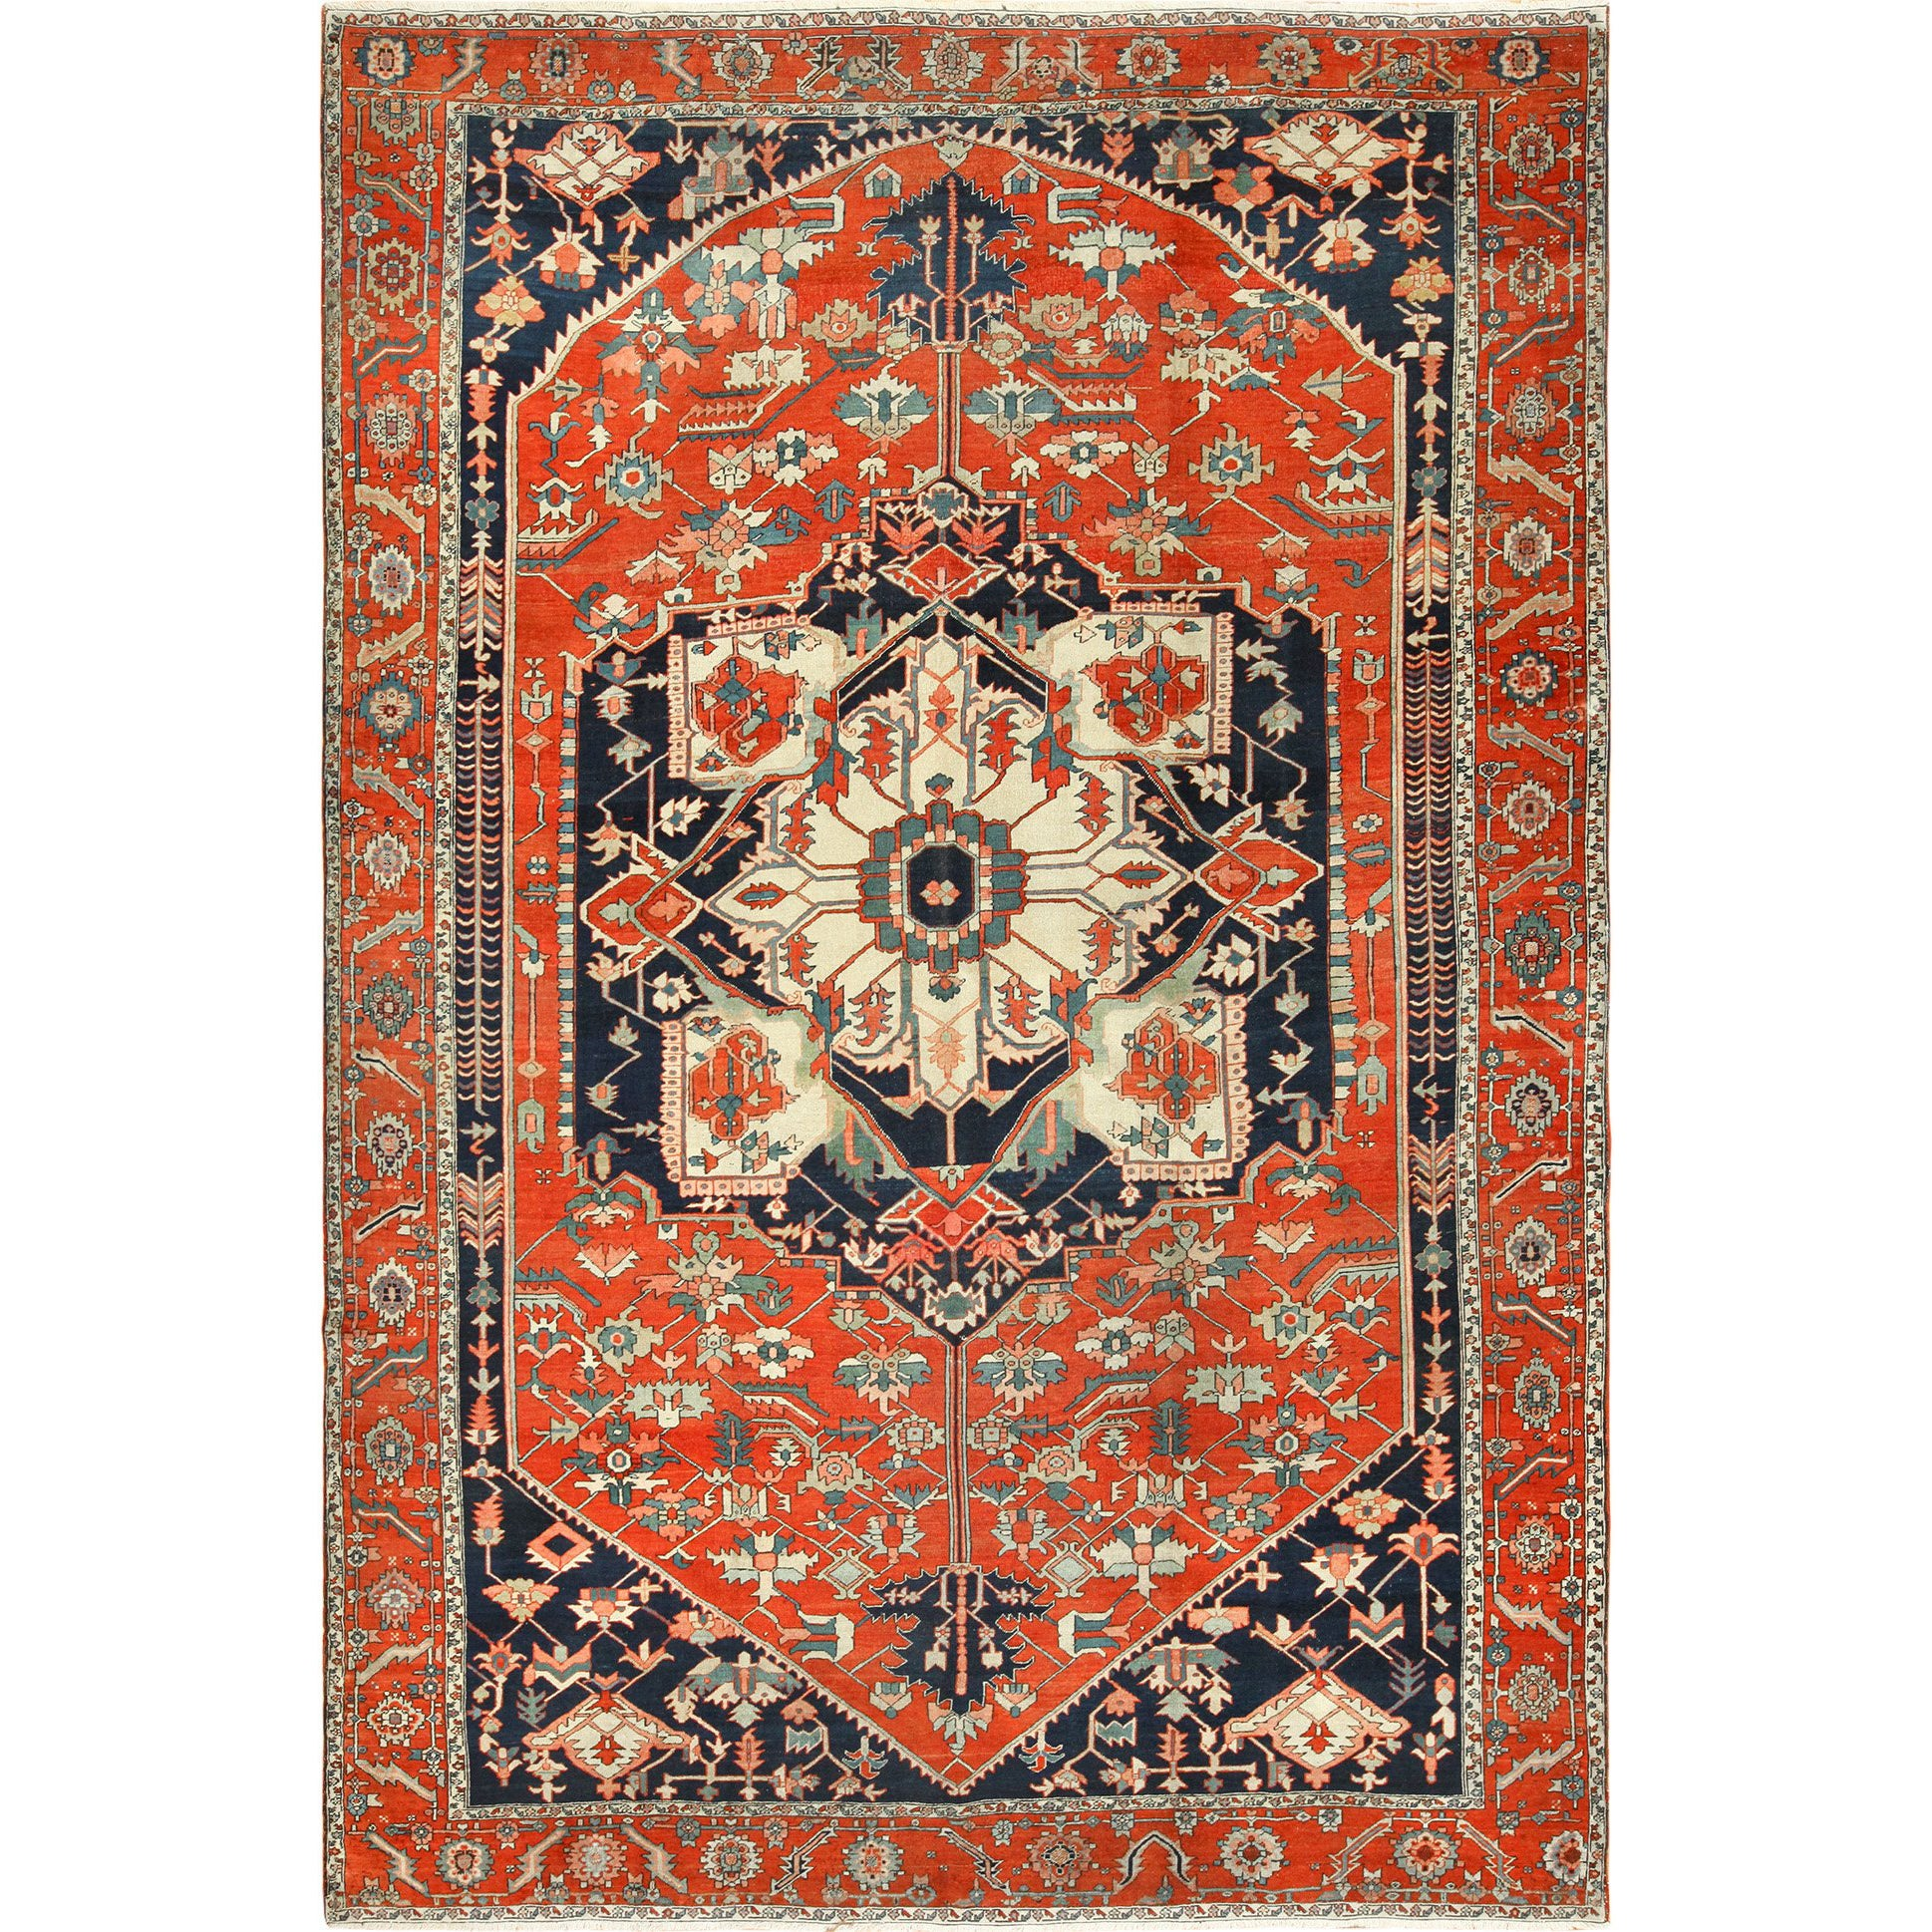 Antique Red Serapi Persian Rug For Sale At 1stdibs